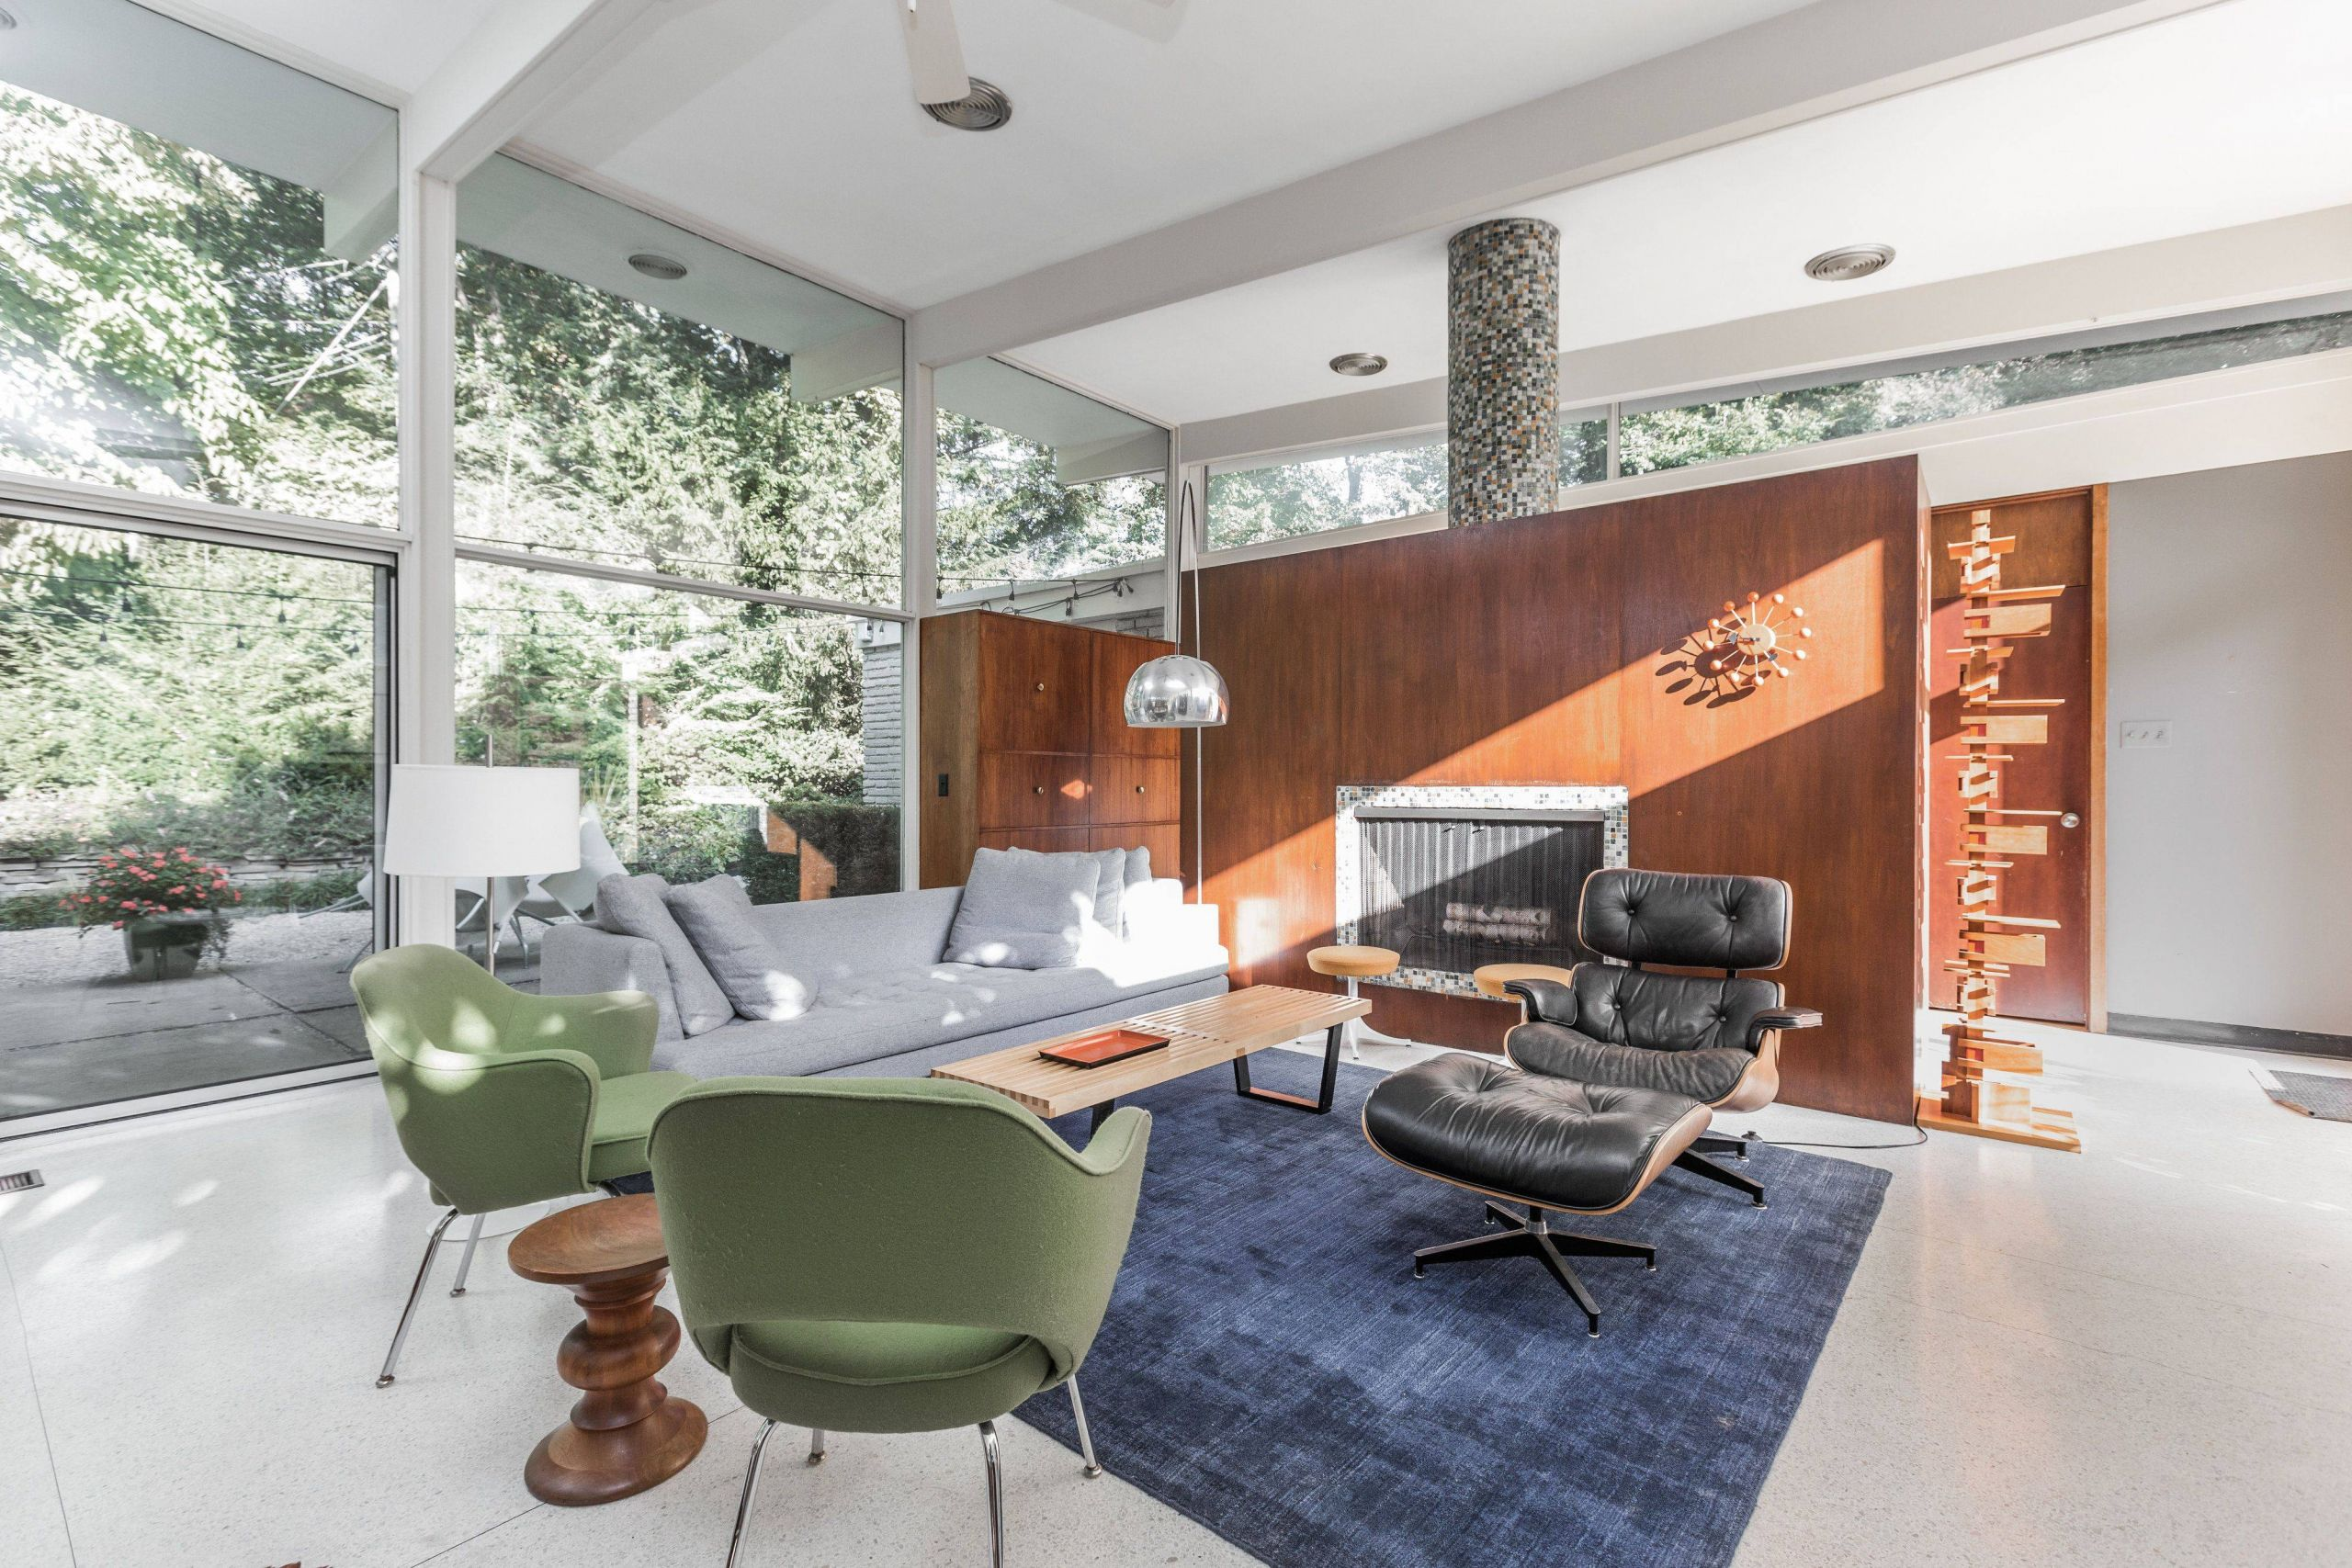 Mid Century Modern Fireplace Lovely 2 Of 10 In A Midcentury Gem by A Famed Indiana